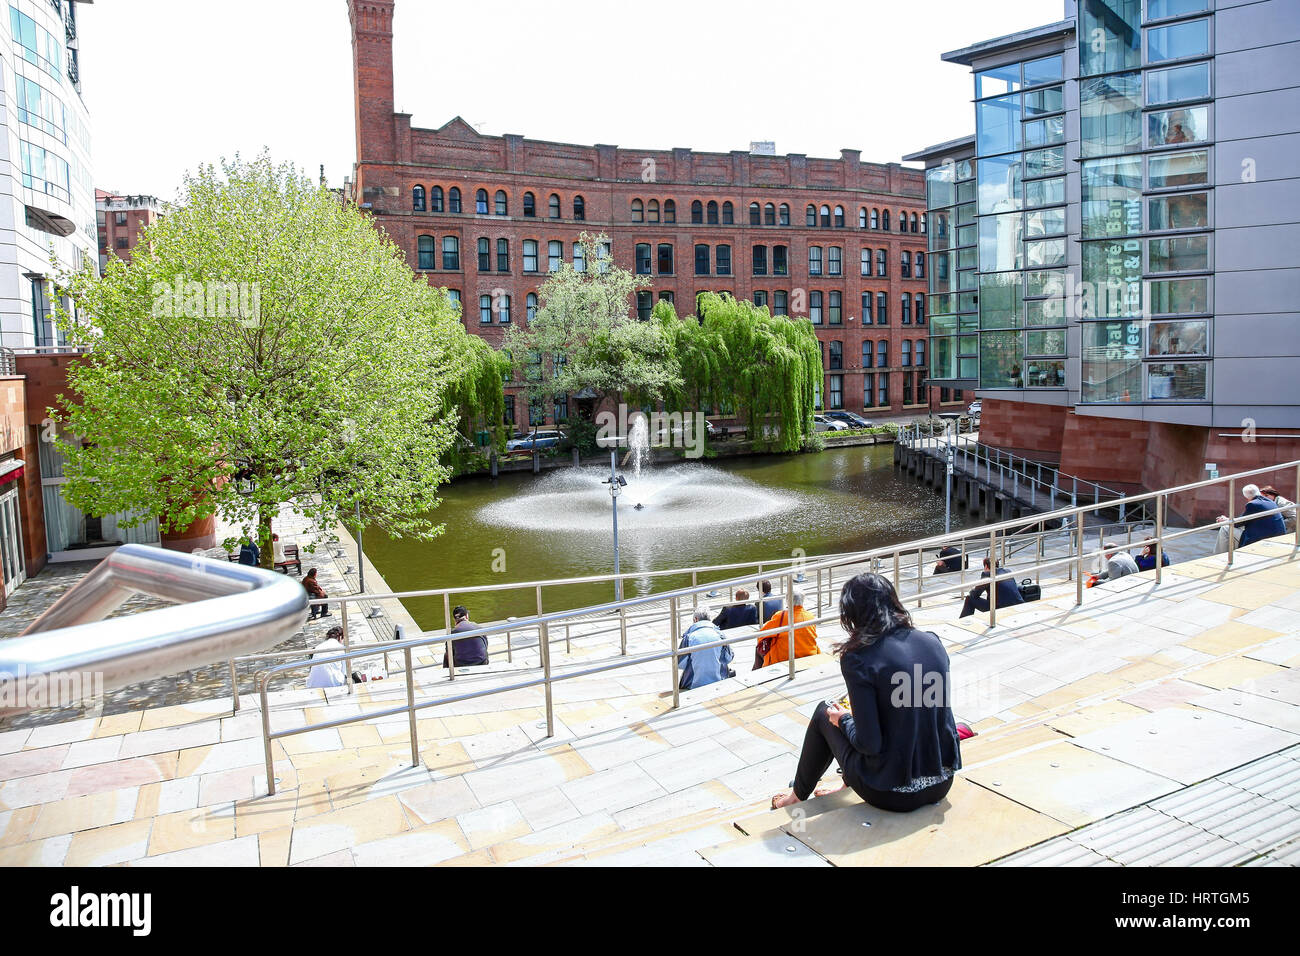 People sitting outside on the steps at Barbirolli Square, Manchester City centre, England UK - Stock Image